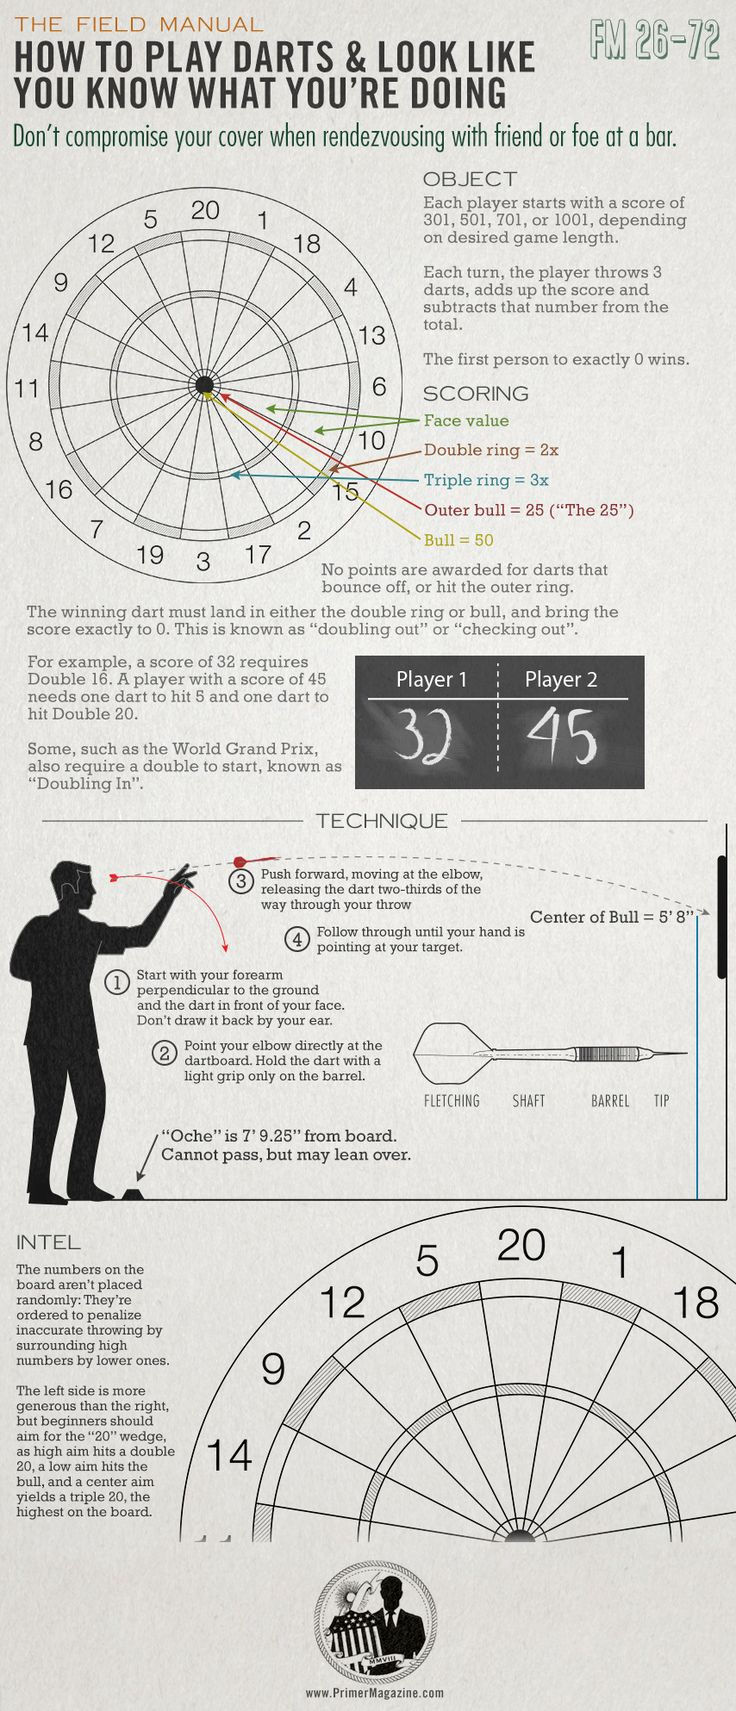 How to play Darts for the beginners!